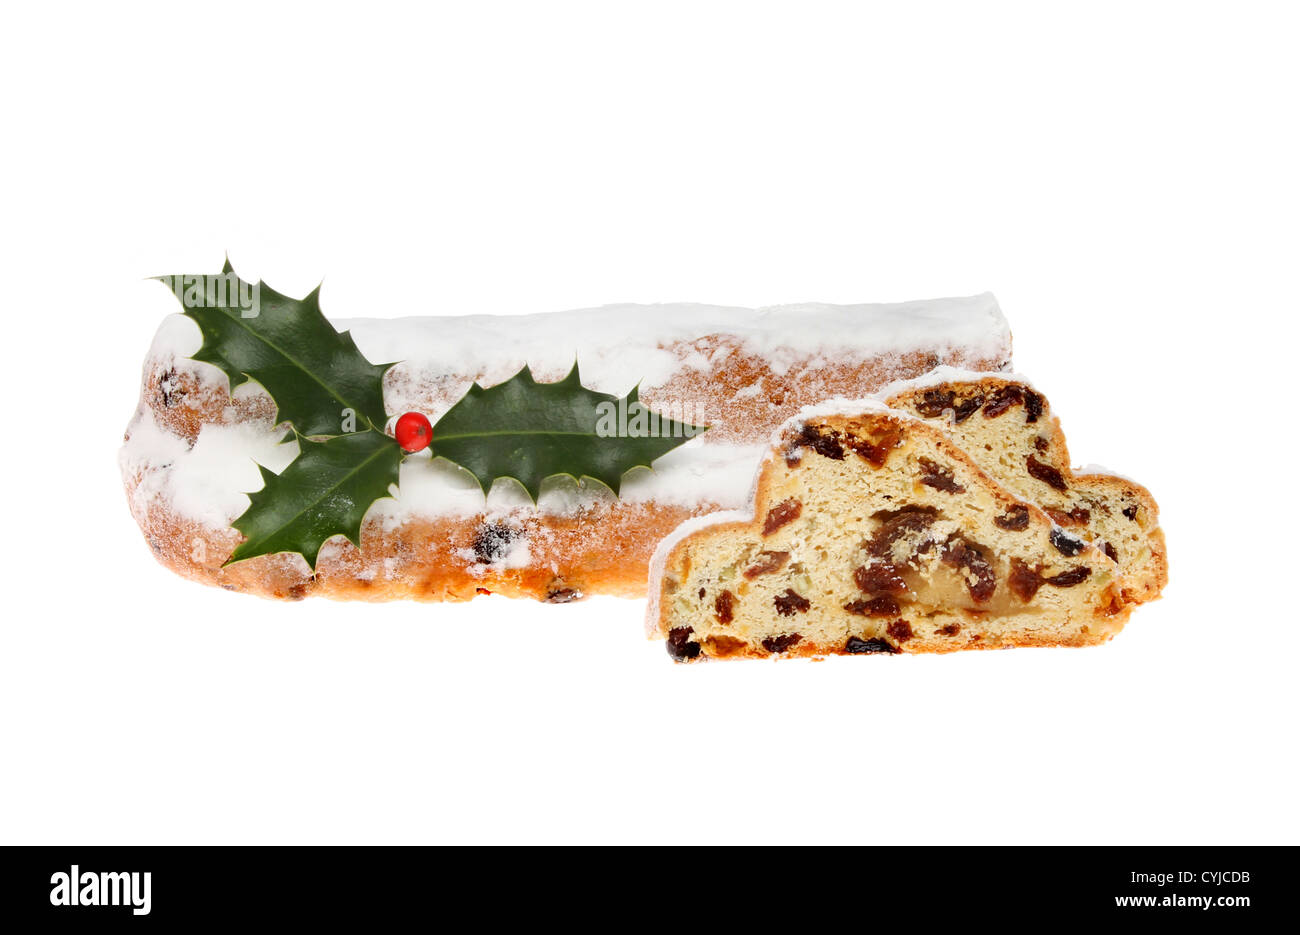 Icing sugar dusted Christmas stollen with slices cut and a sprig of holly isolated against white - Stock Image